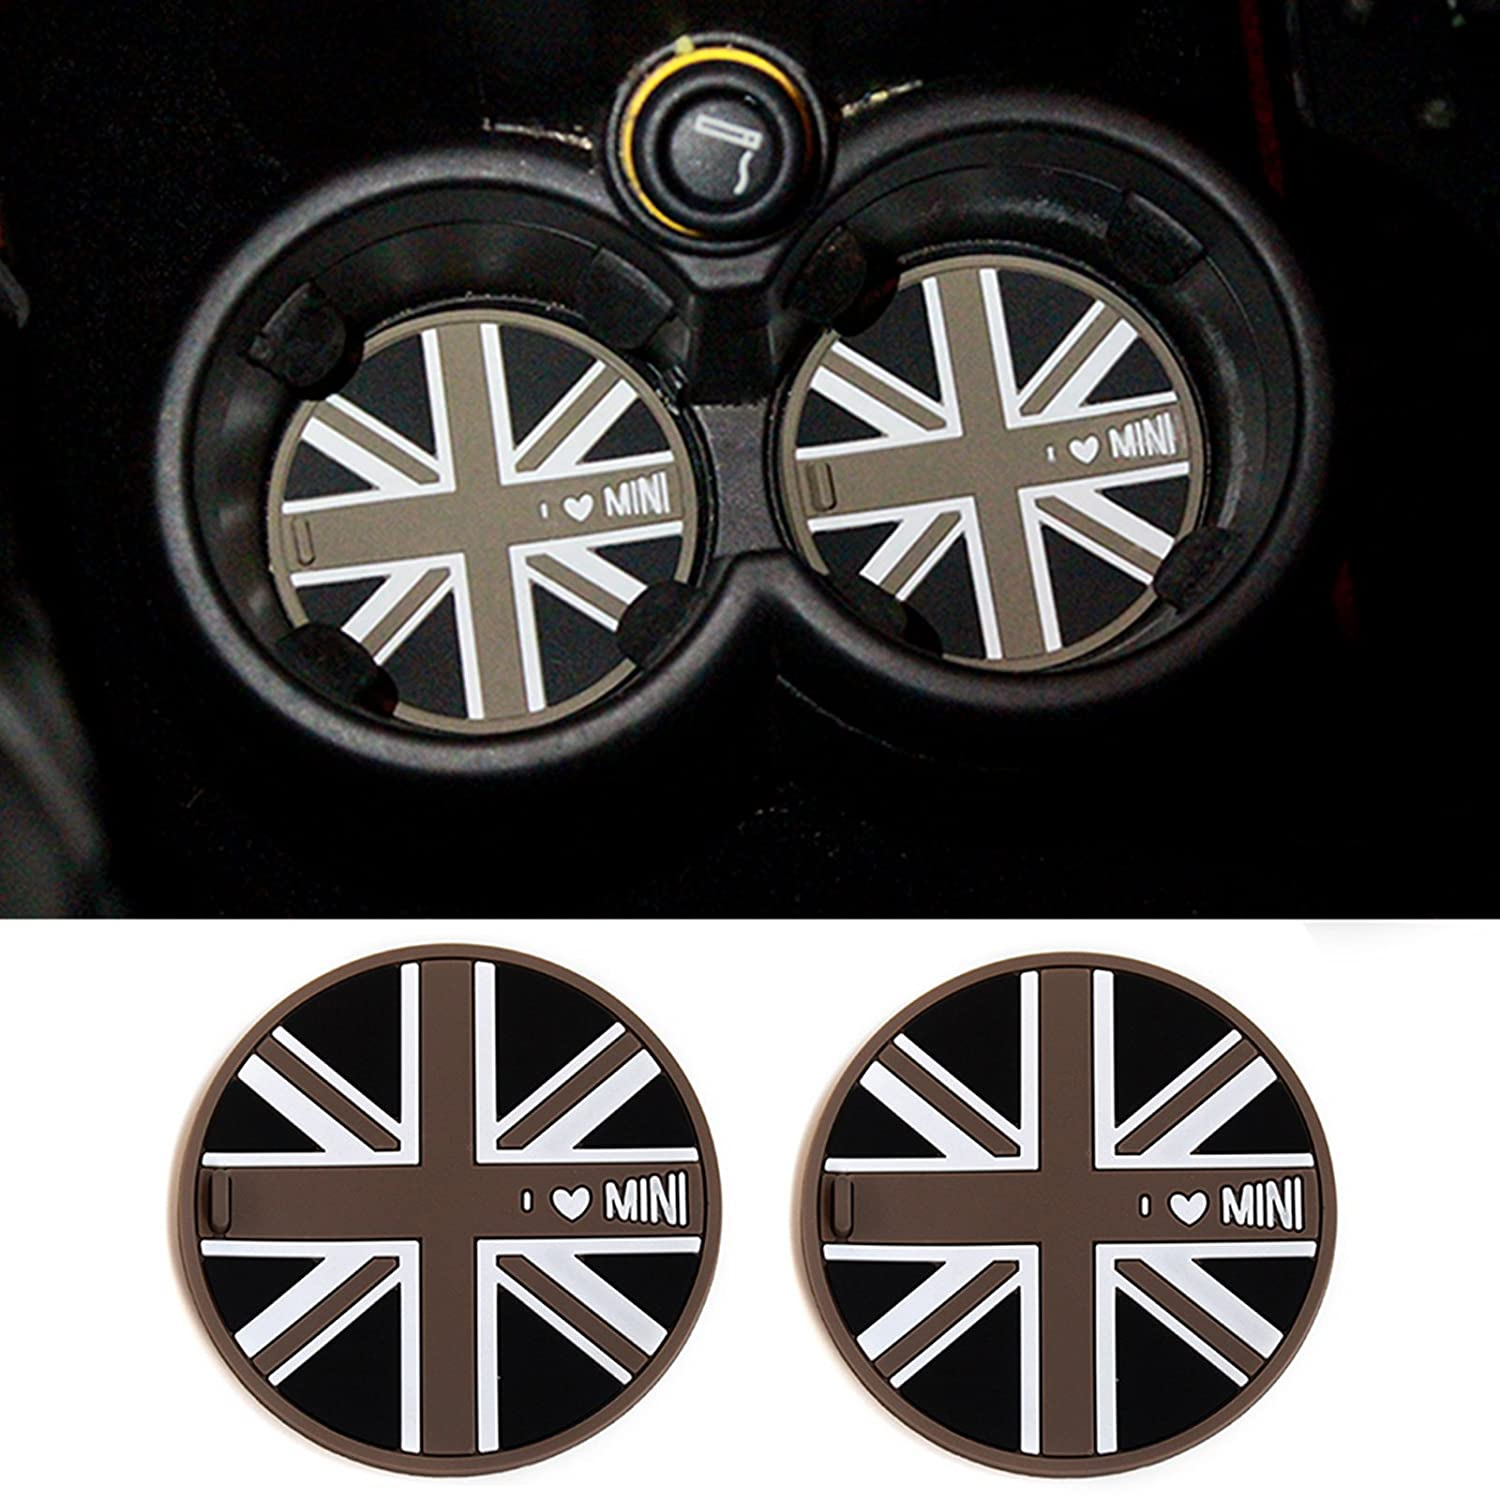 Soft Silicone Front Cup Holder Coasters For MINI Cooper R55 R56 R57 R58 R59-grey jack TTN